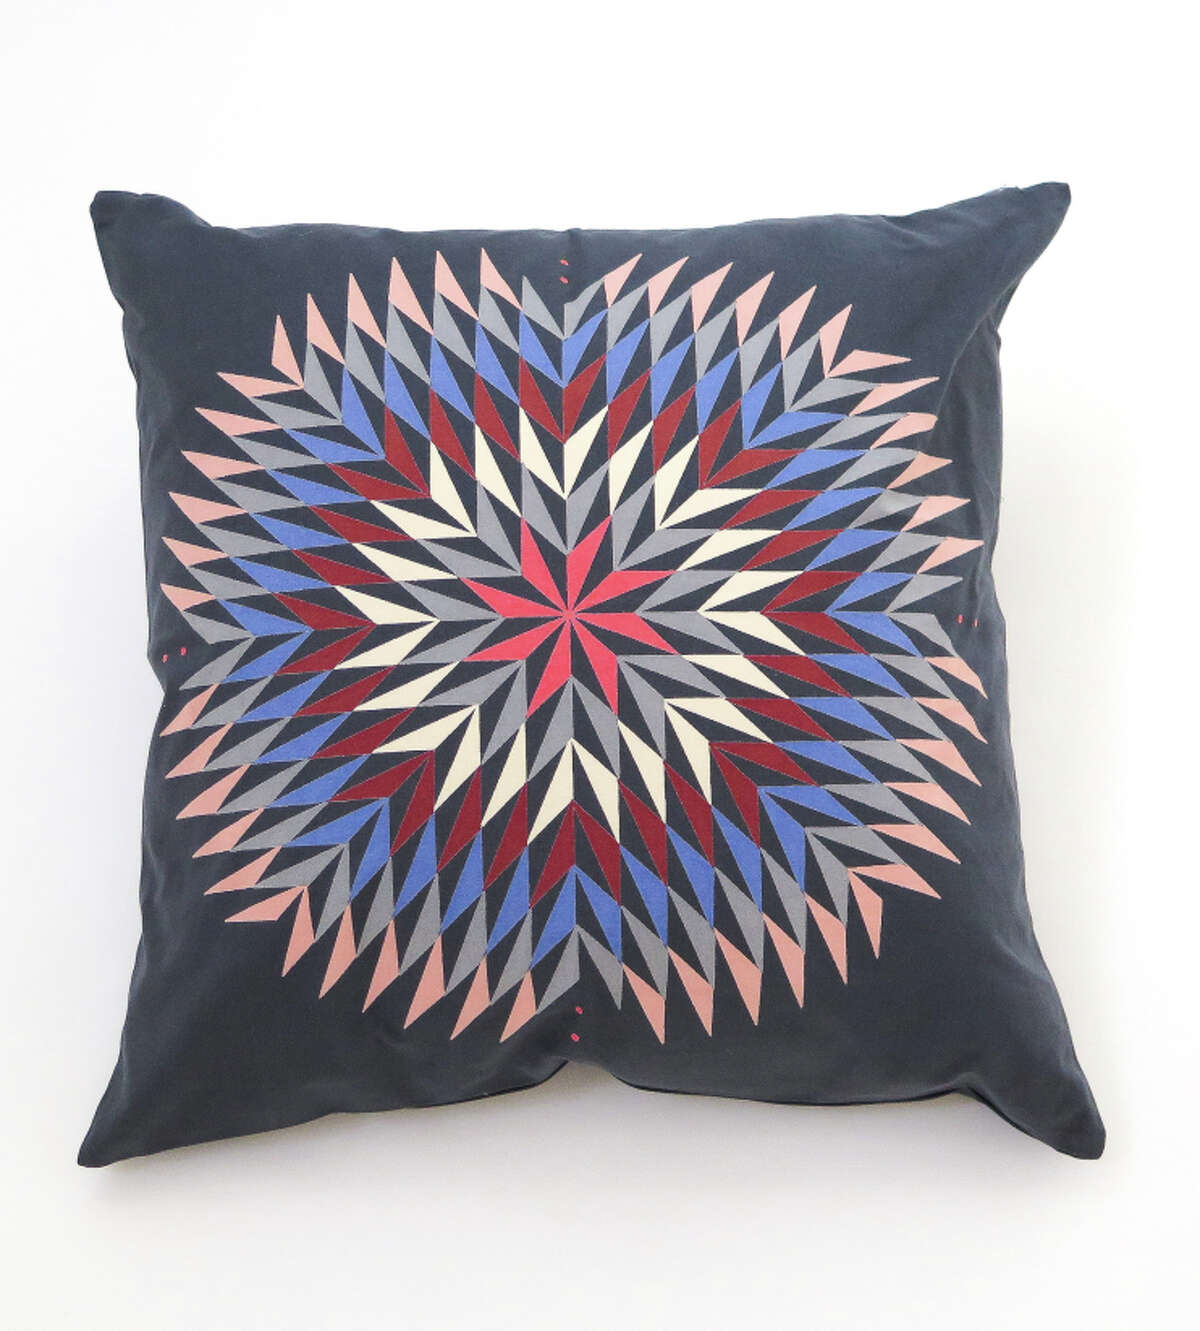 Throw pillows from the Erica Tanov and Lena Wolff collaboration, featuring Wolff's dahlia print artwork. Dahlia print pillow, $126.